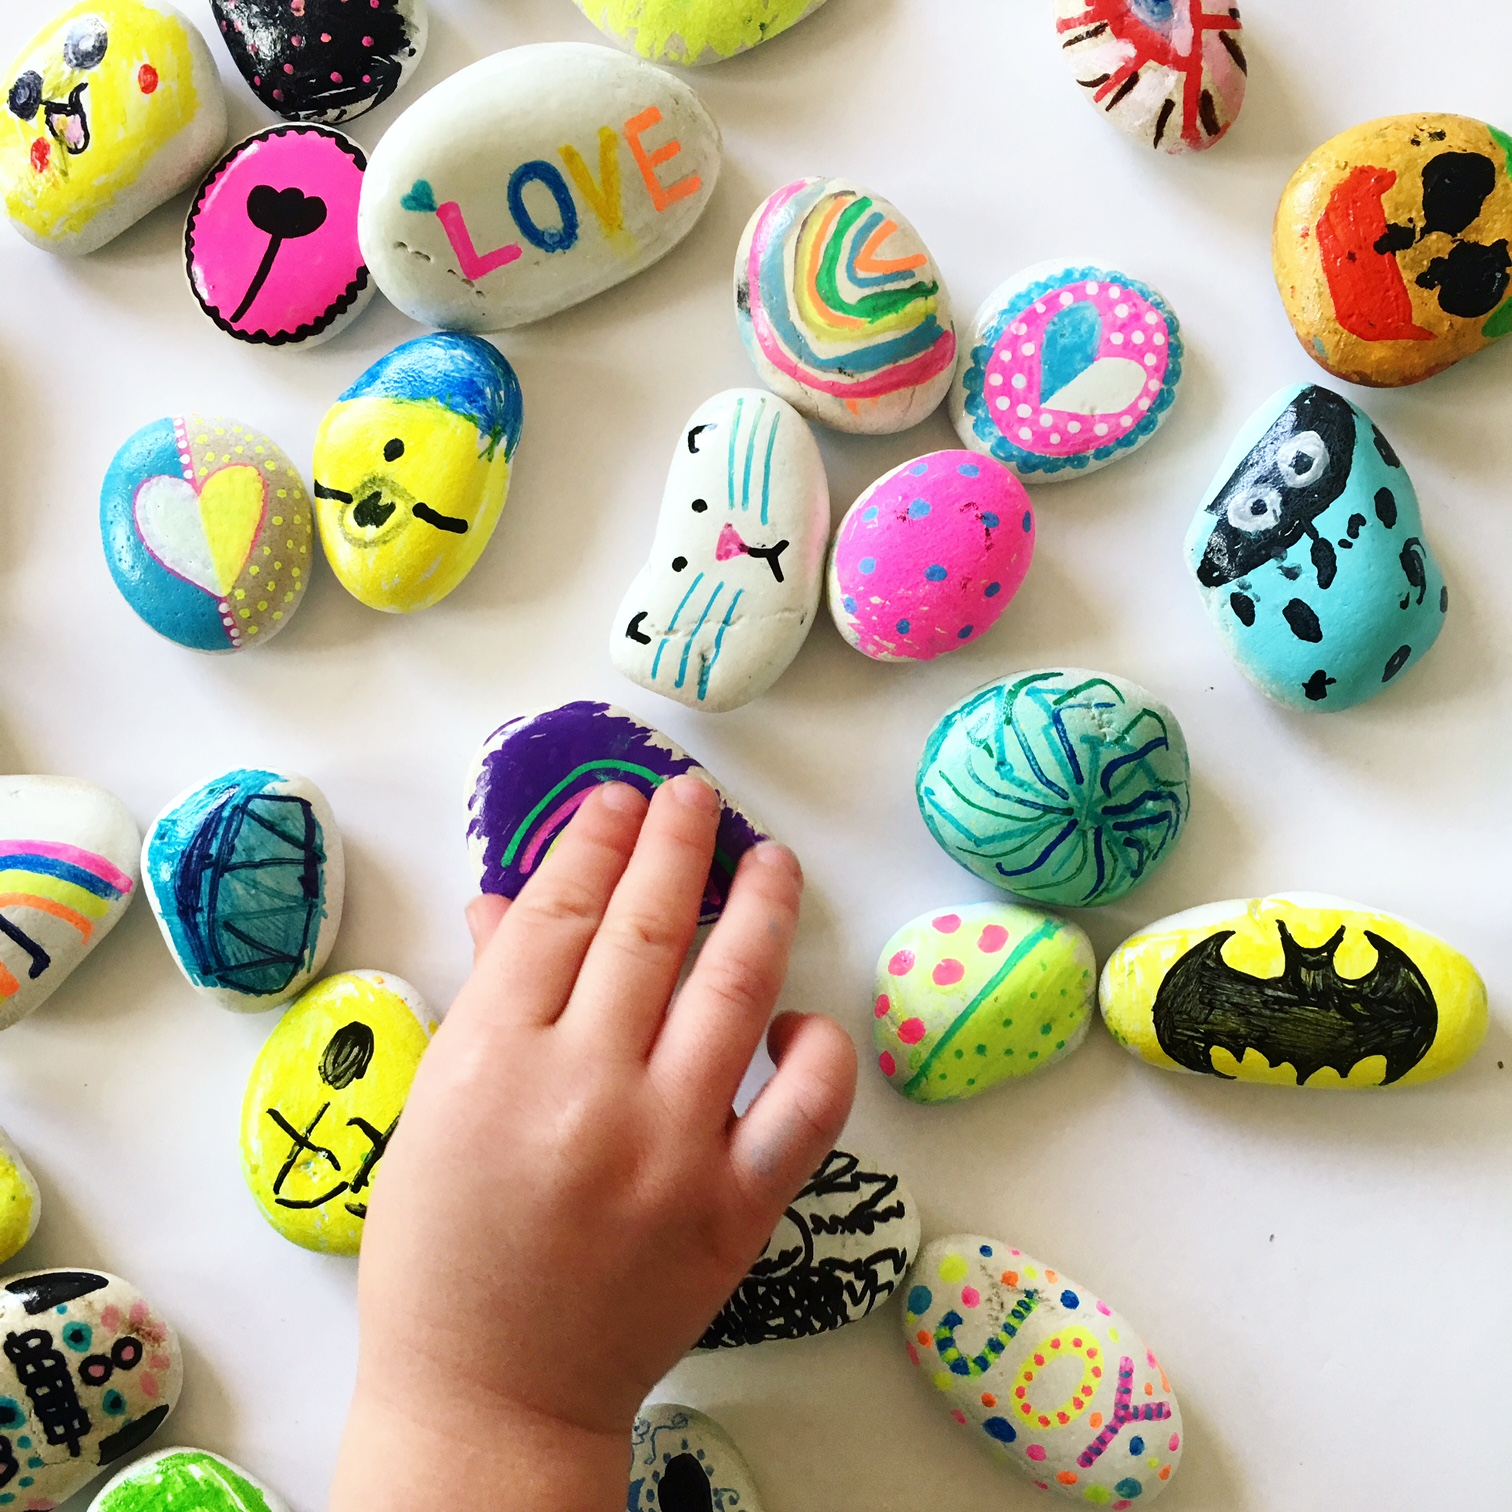 rock painting ideas | kids activities and crafts developing fine motor, creativity and kindness